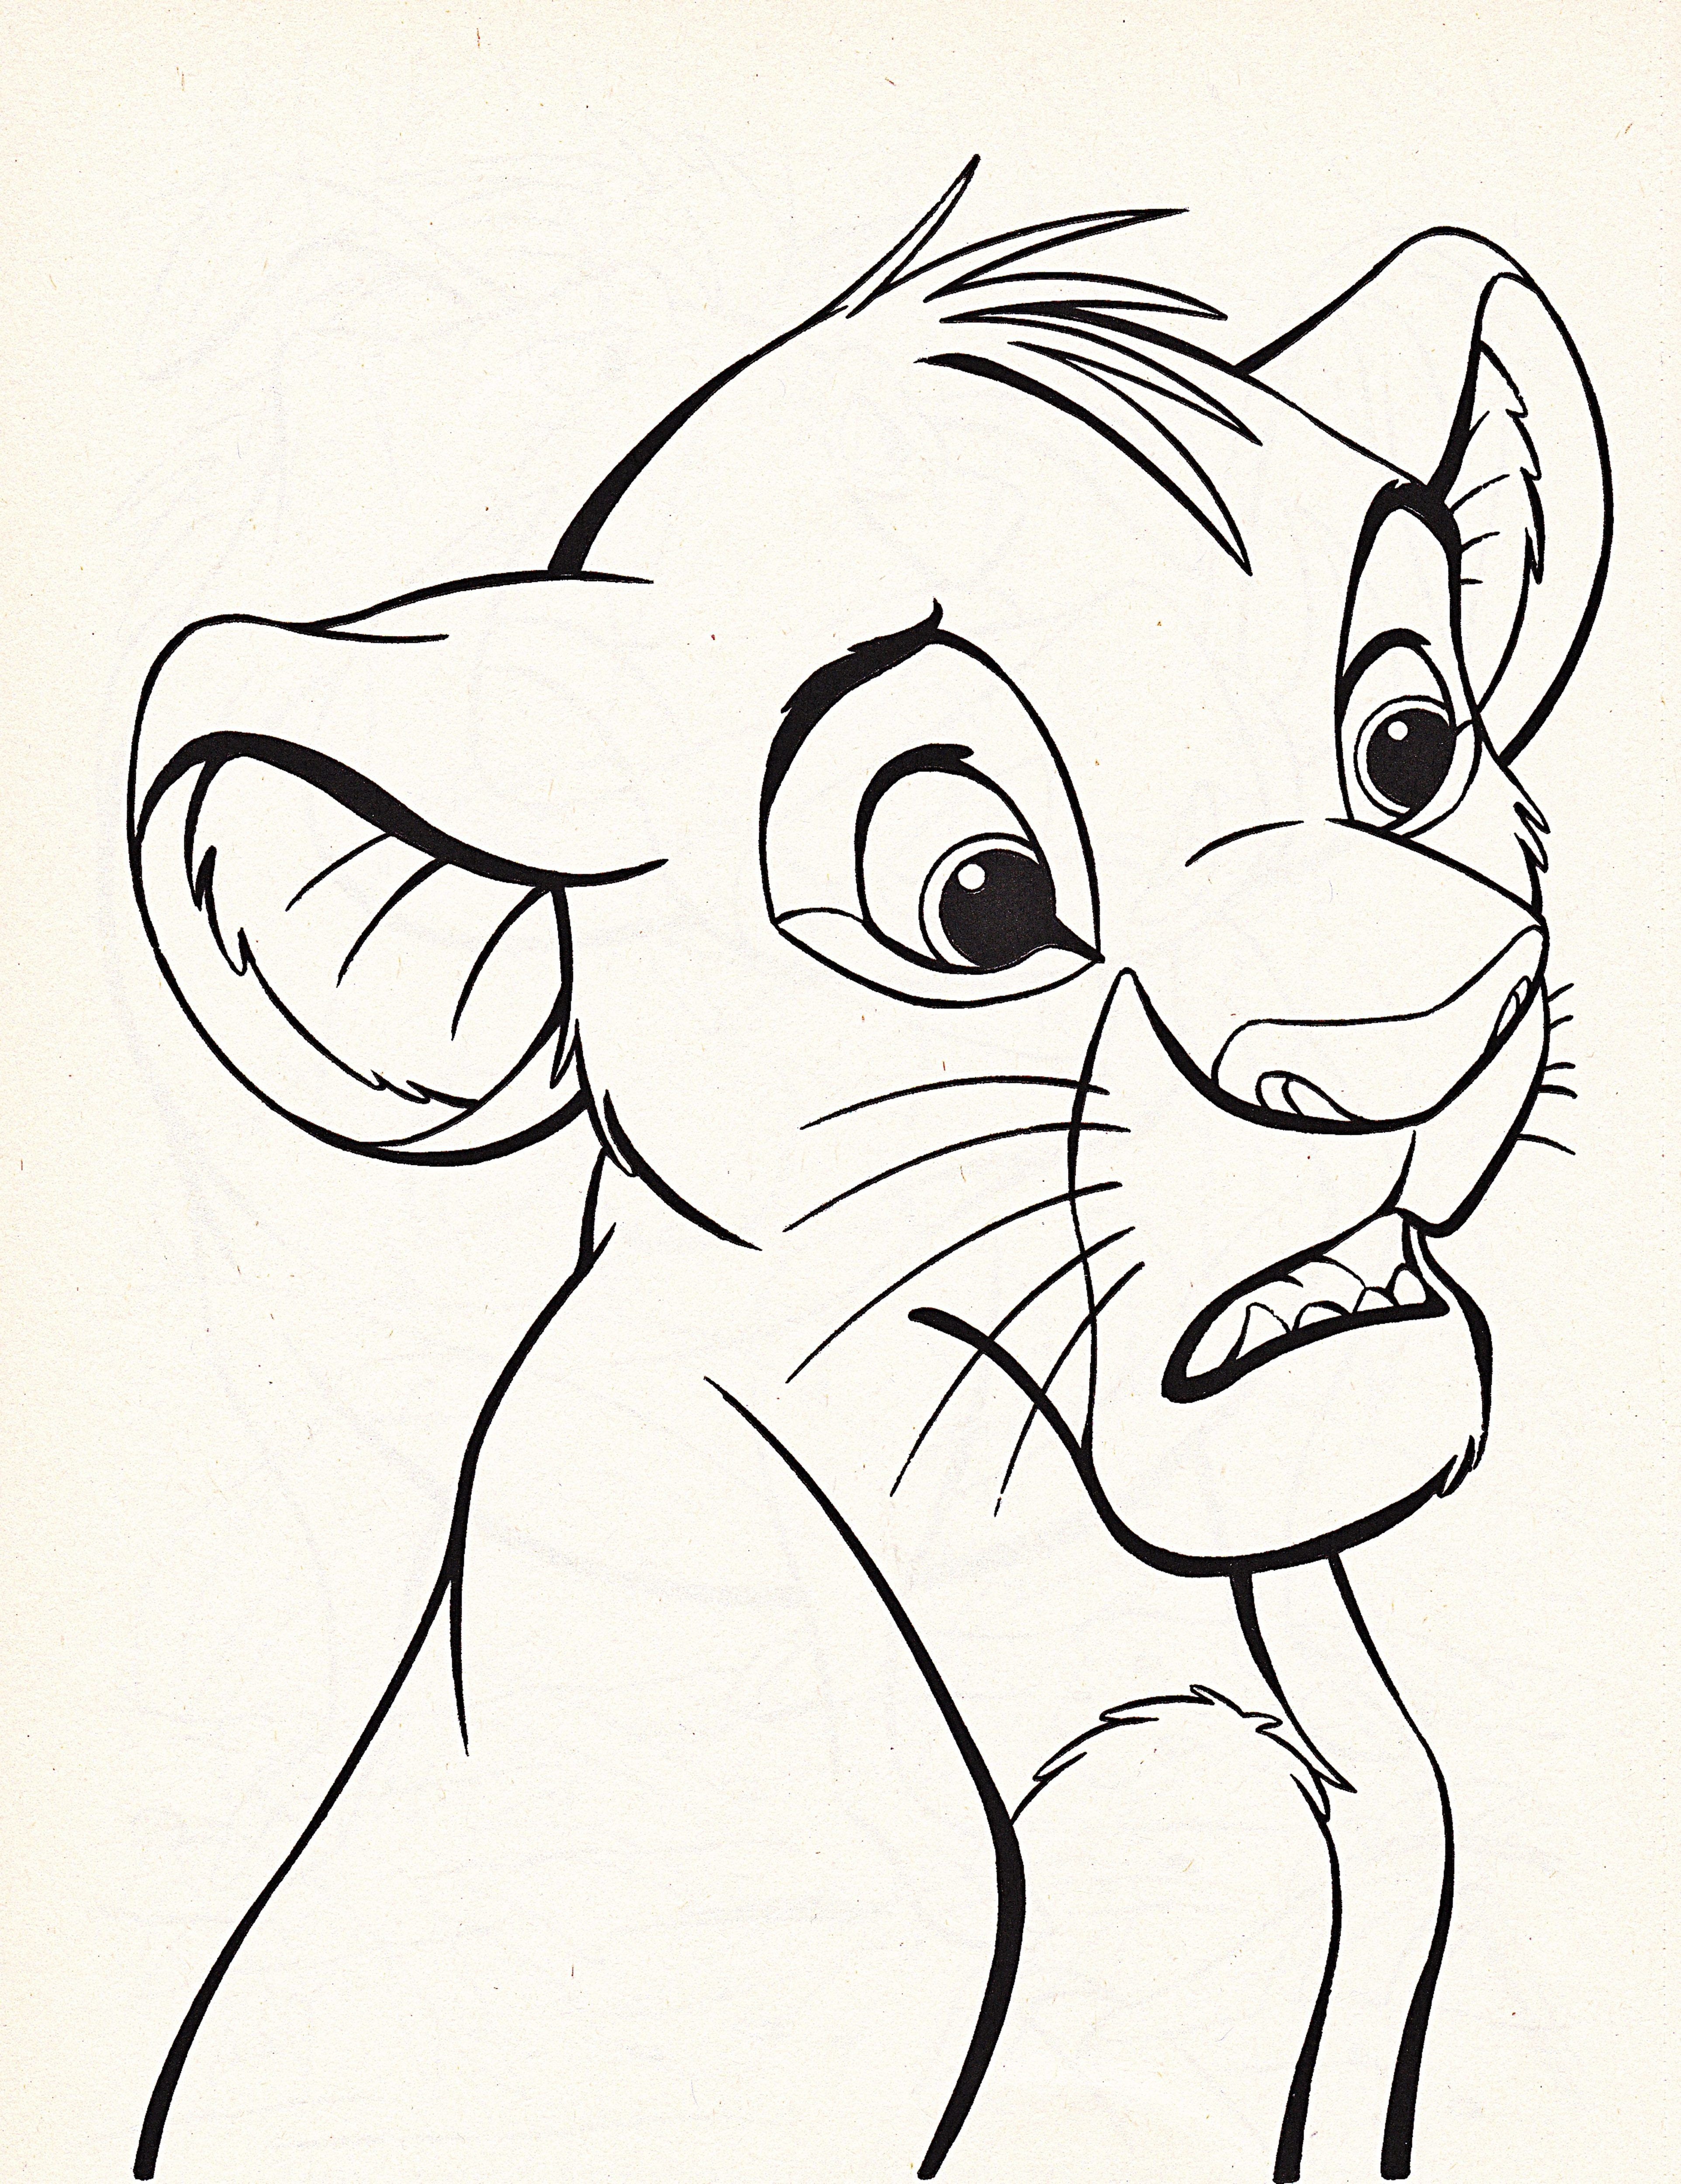 Coloring pages disney channel characters - All Disney Characters Coloring Pages Virtren Com